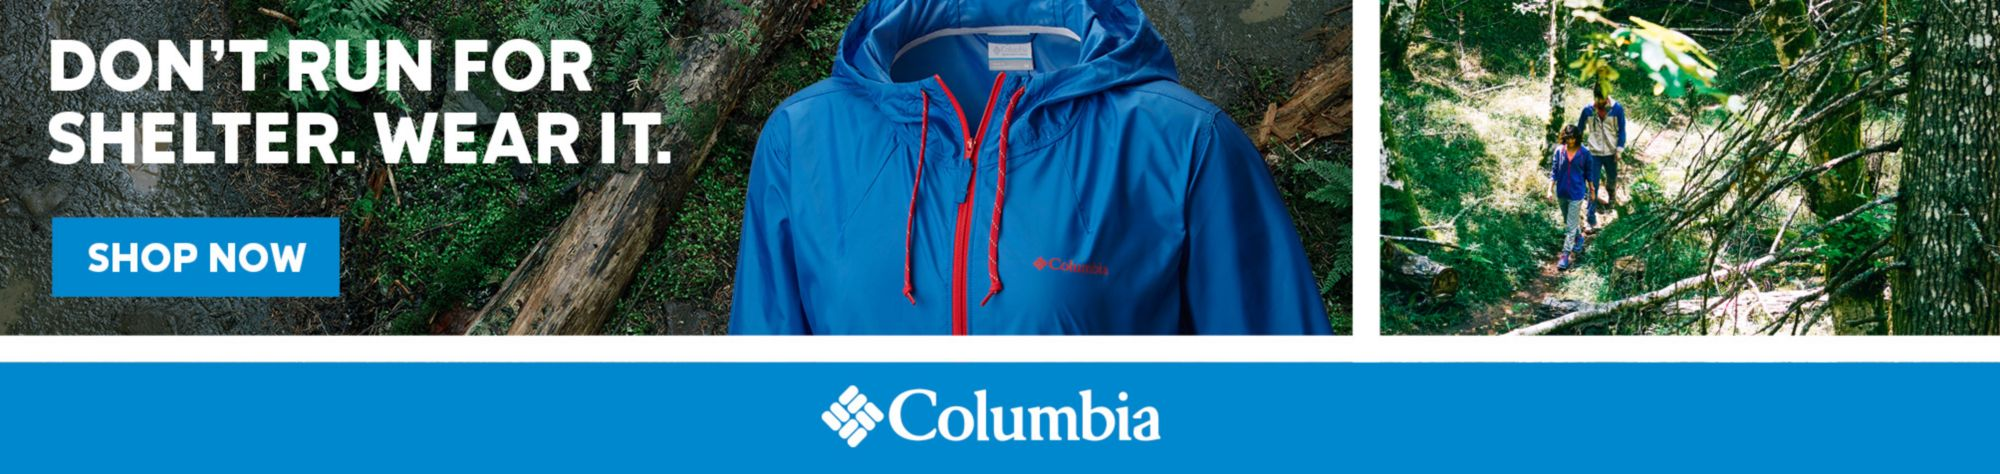 Shop Columbia Rainwear